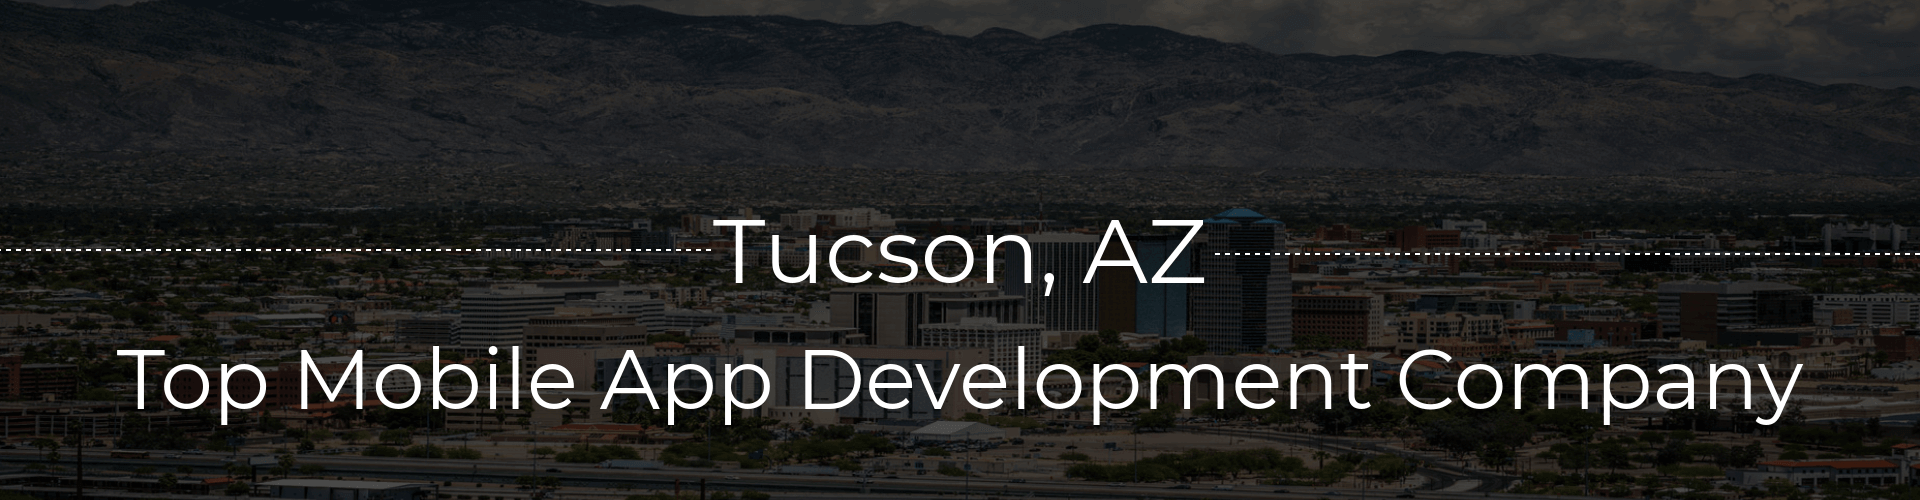 mobile app development company tuscon